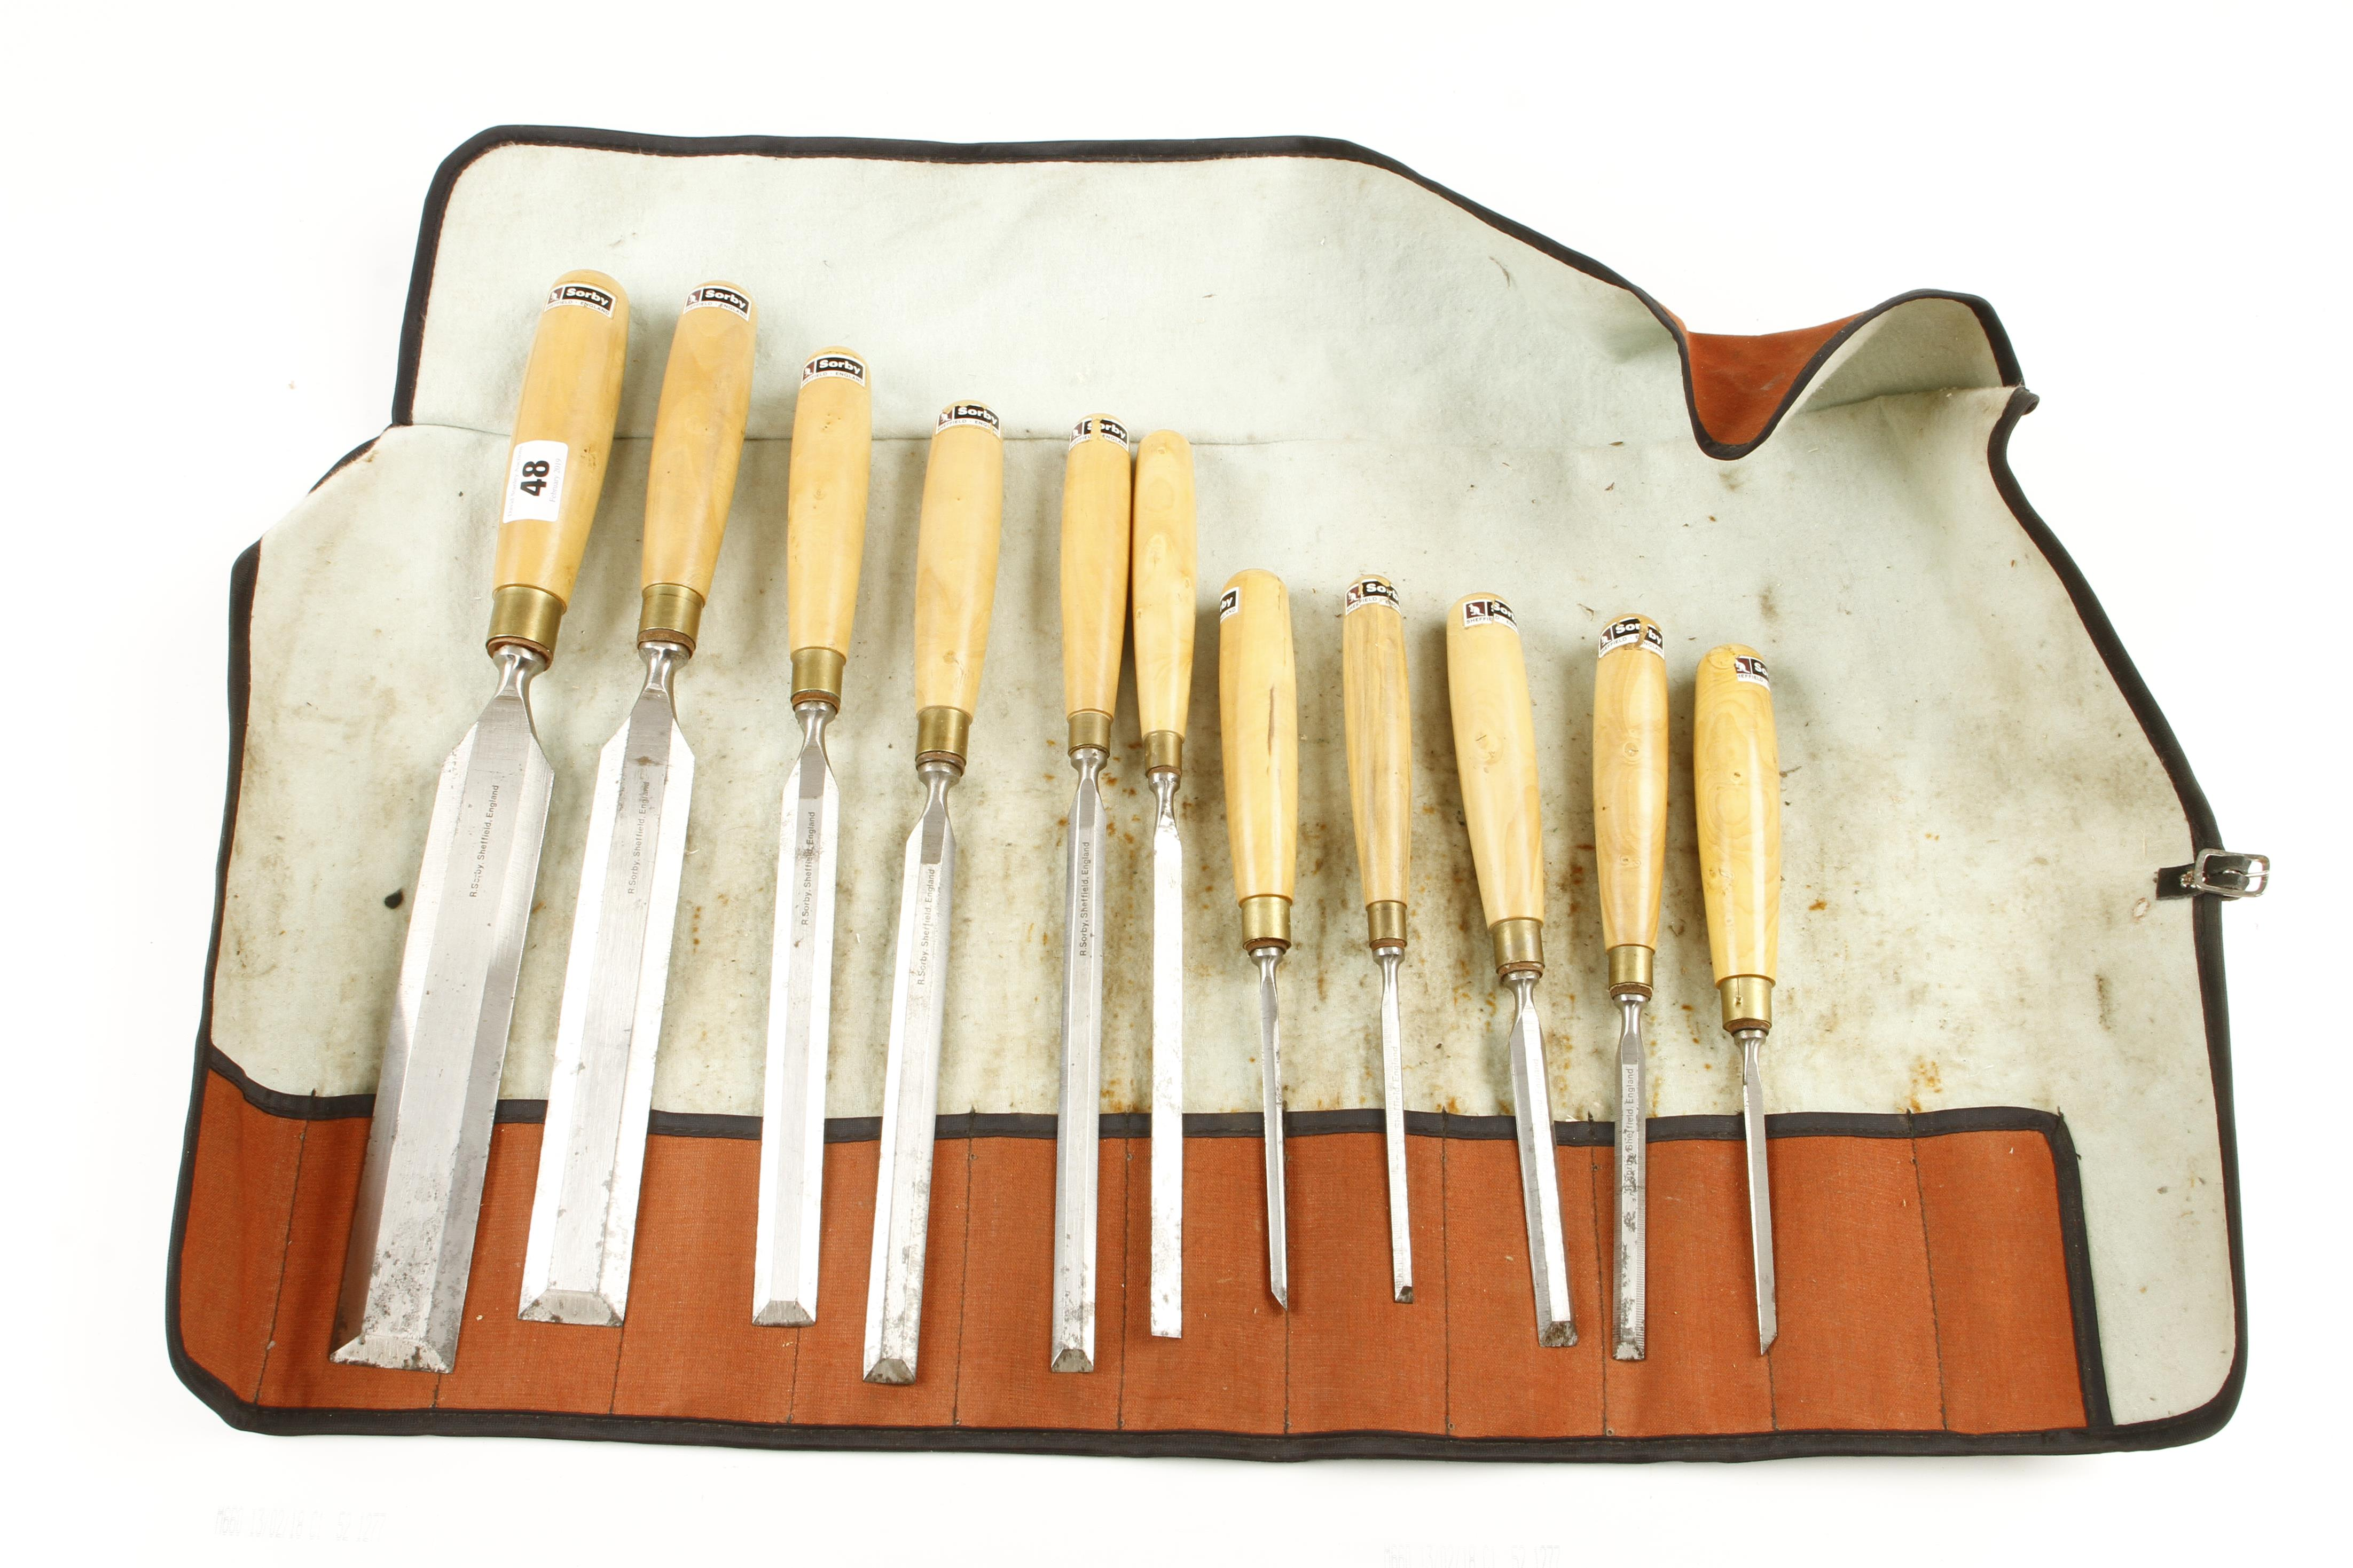 Lot 48 - A set of 11 bevel edge chisels by SORBY with orig trade labels,